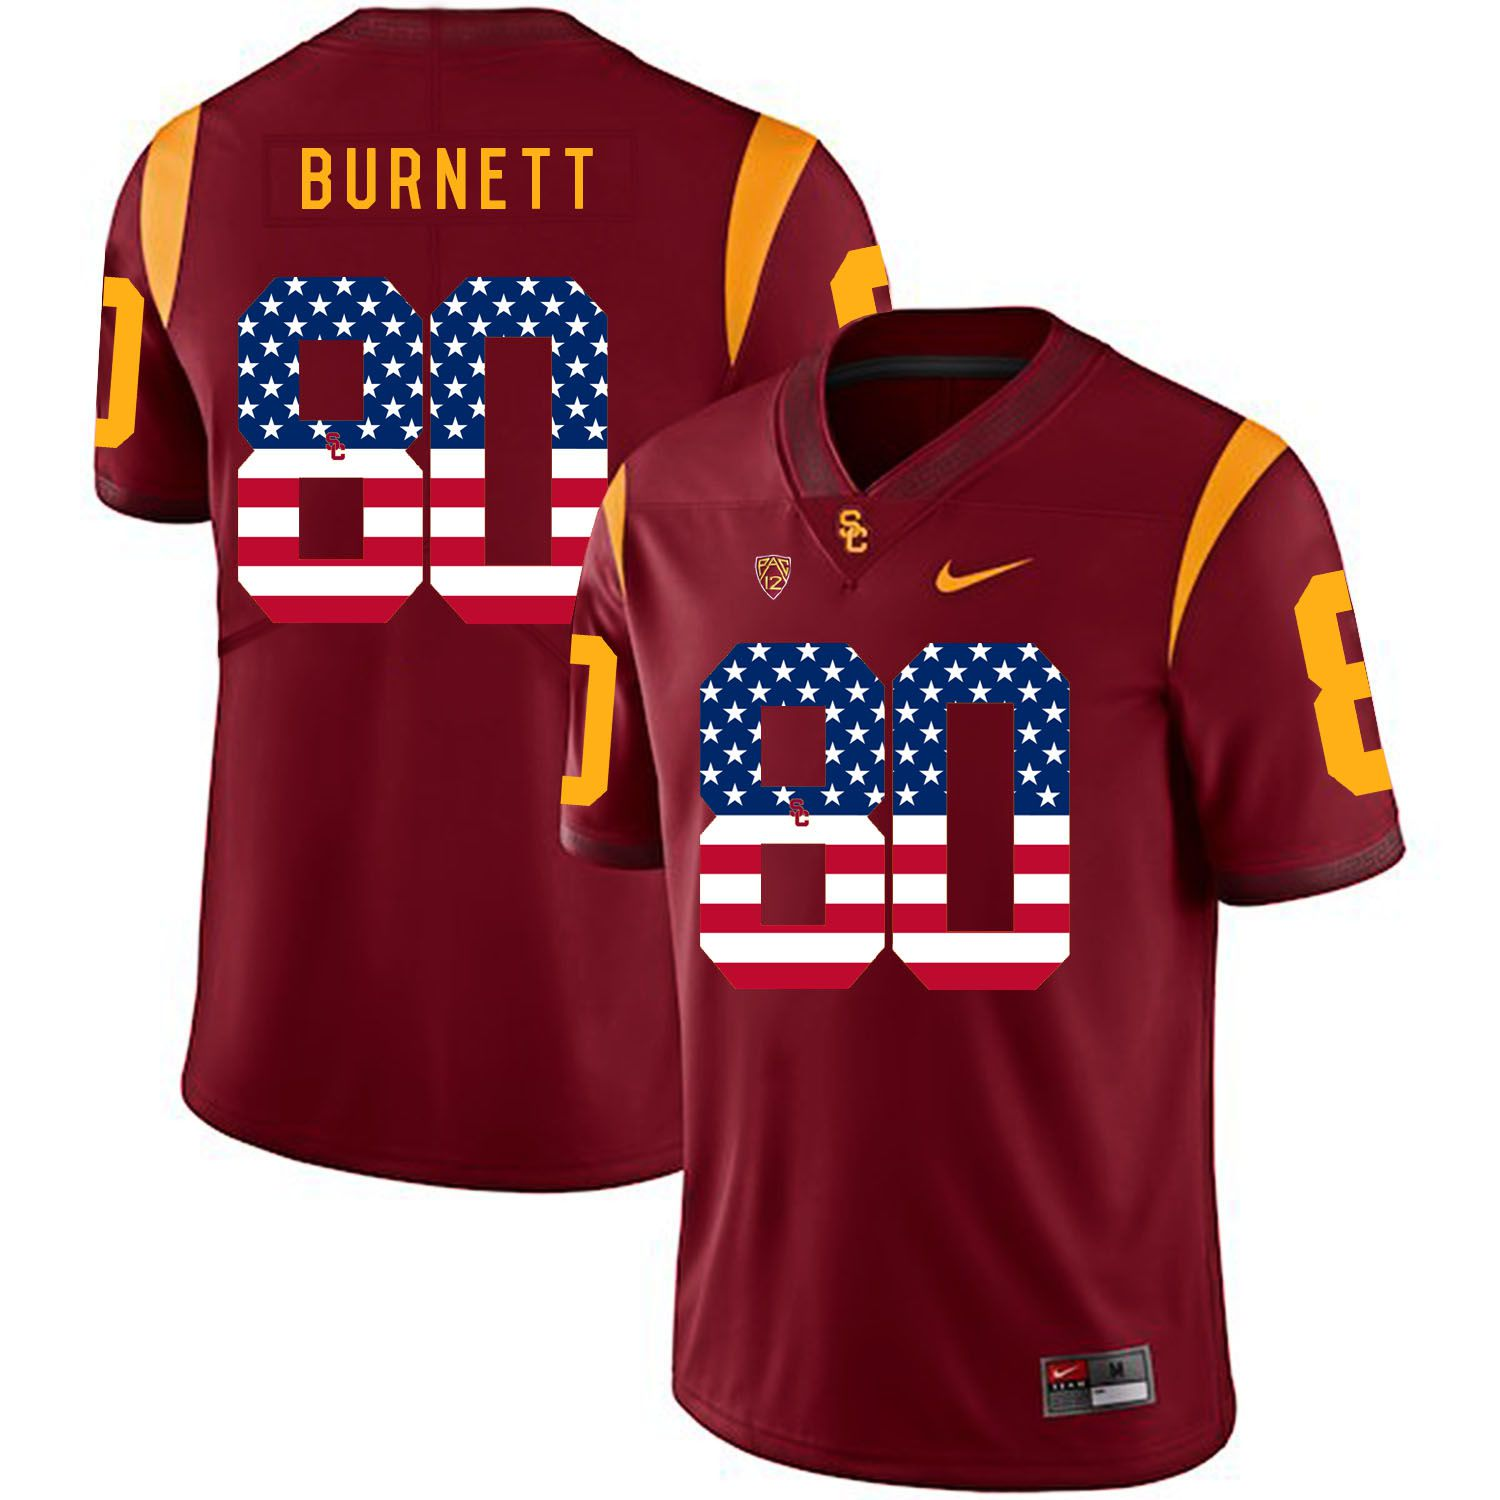 Men USC Trojans 80 Burnett Red Flag Customized NCAA Jerseys